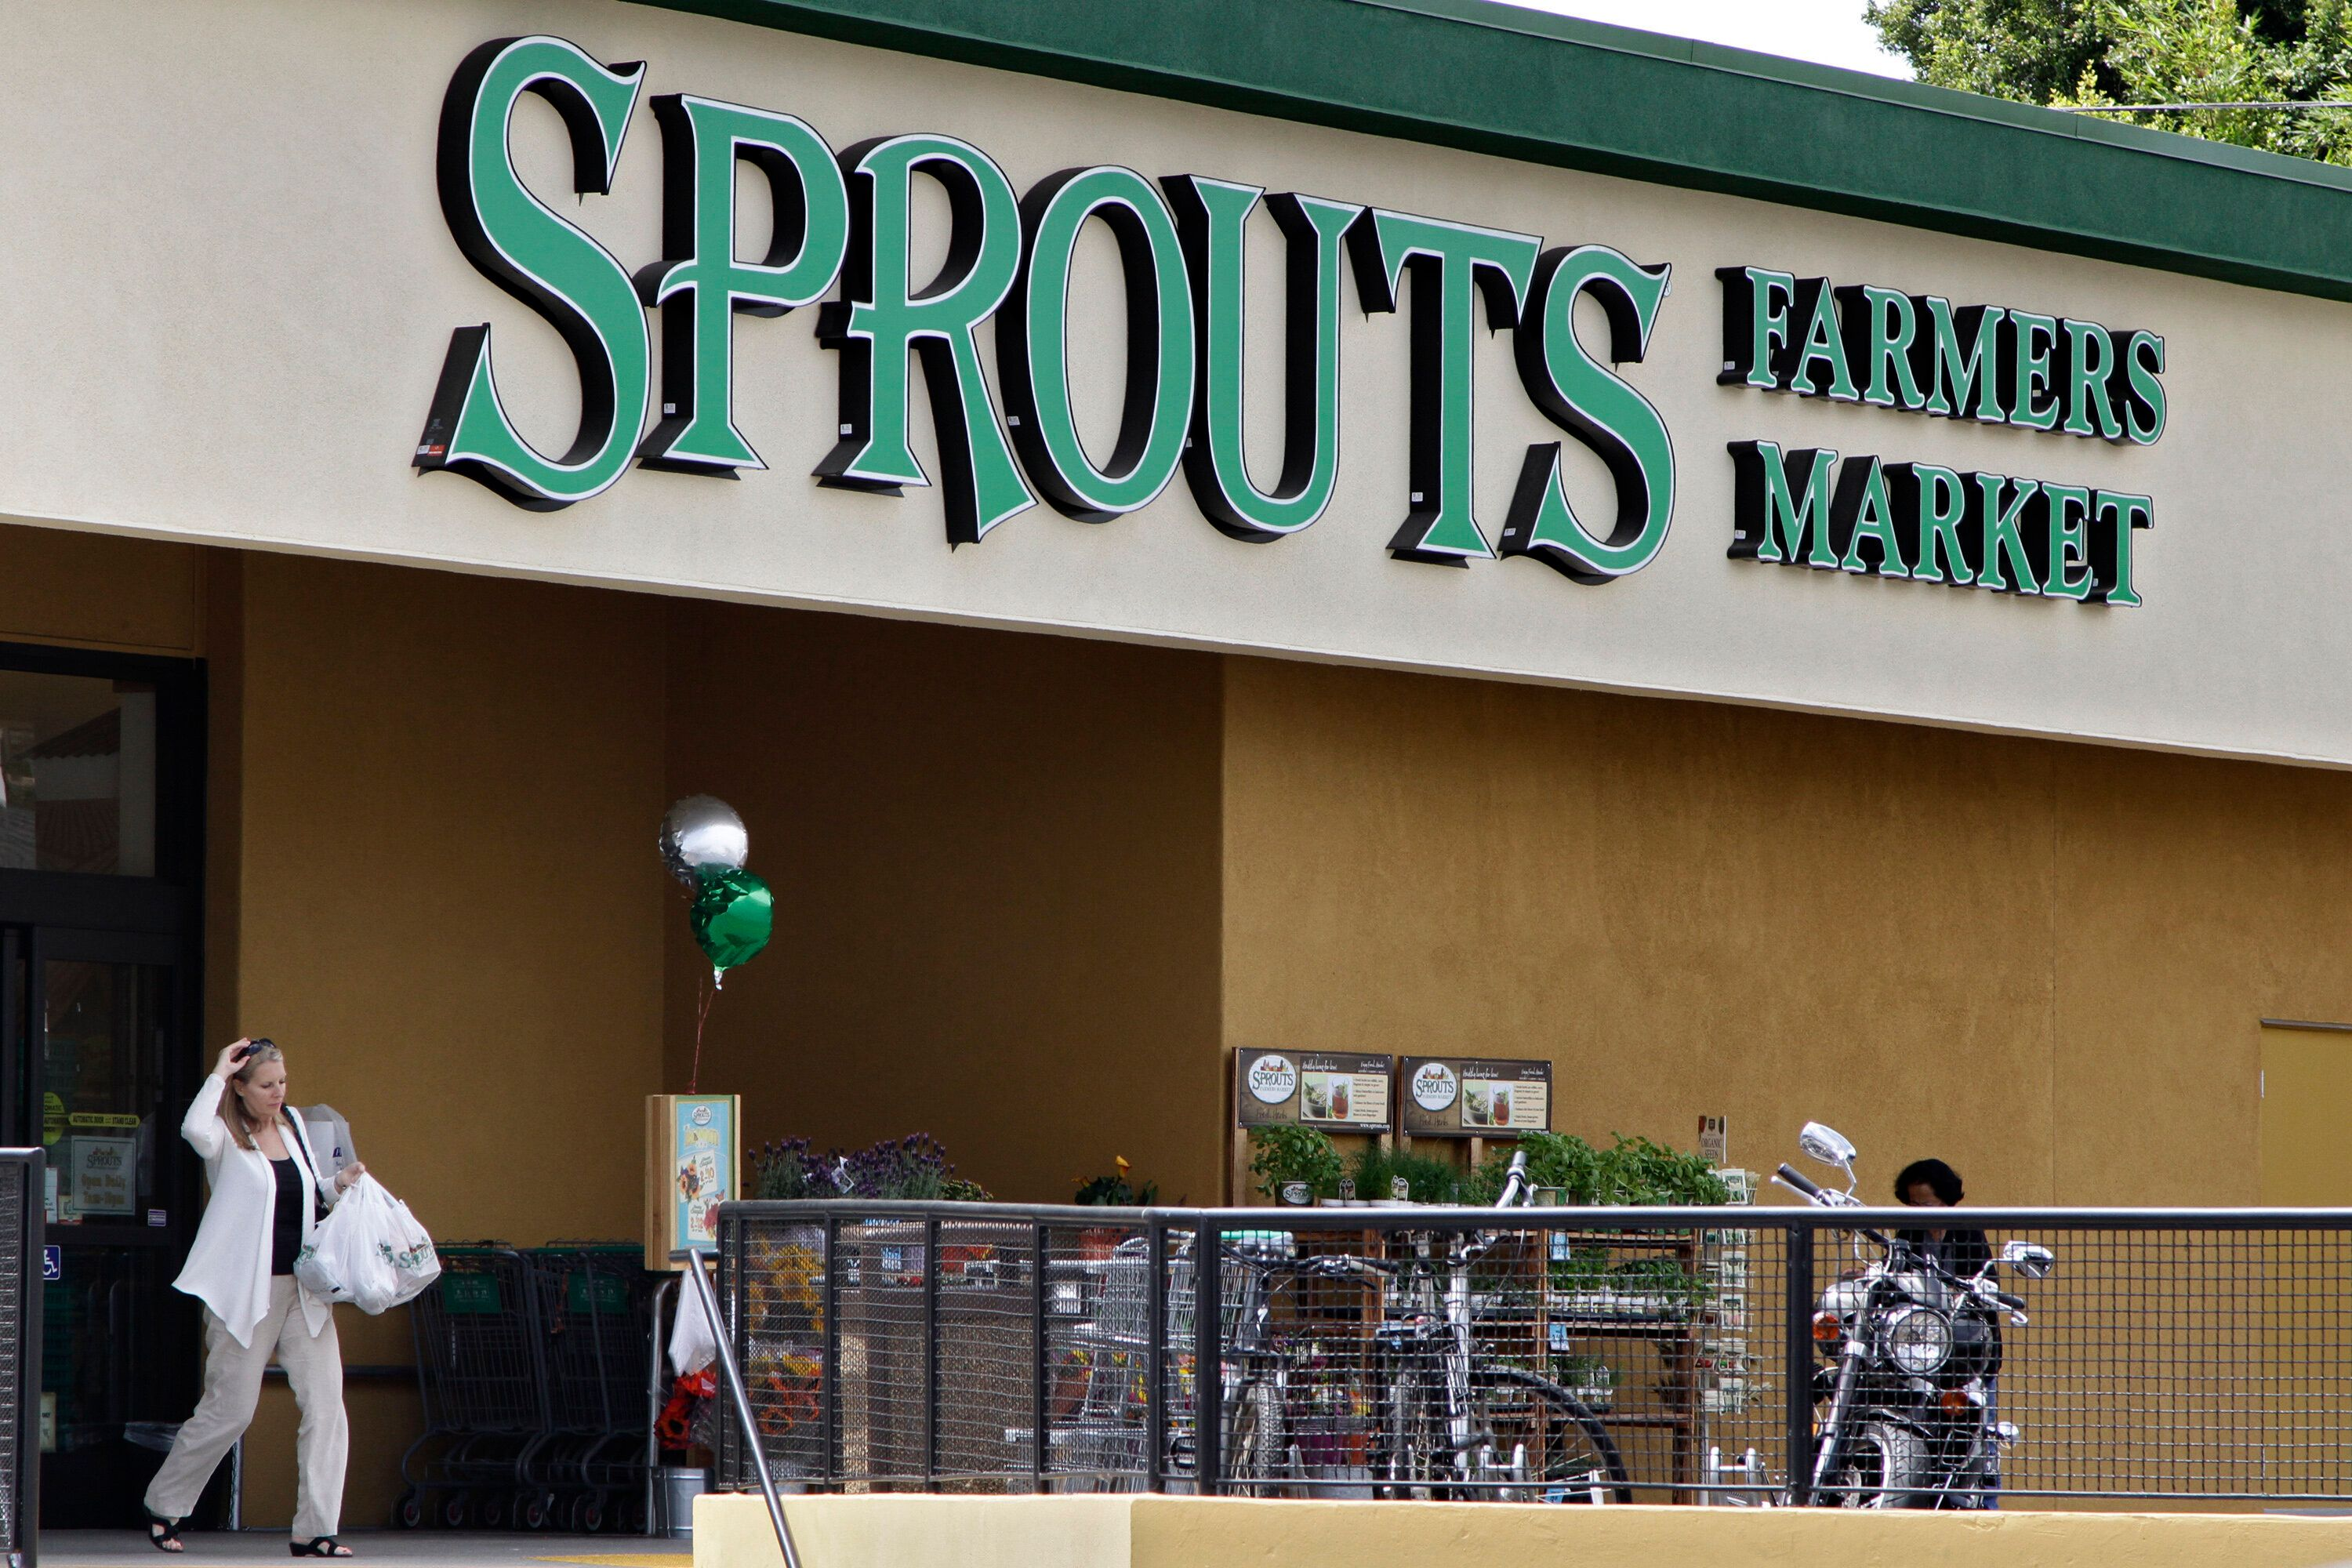 A Sprouts worker in Texas said their store has not been enforcing mask requirements despite a state order.